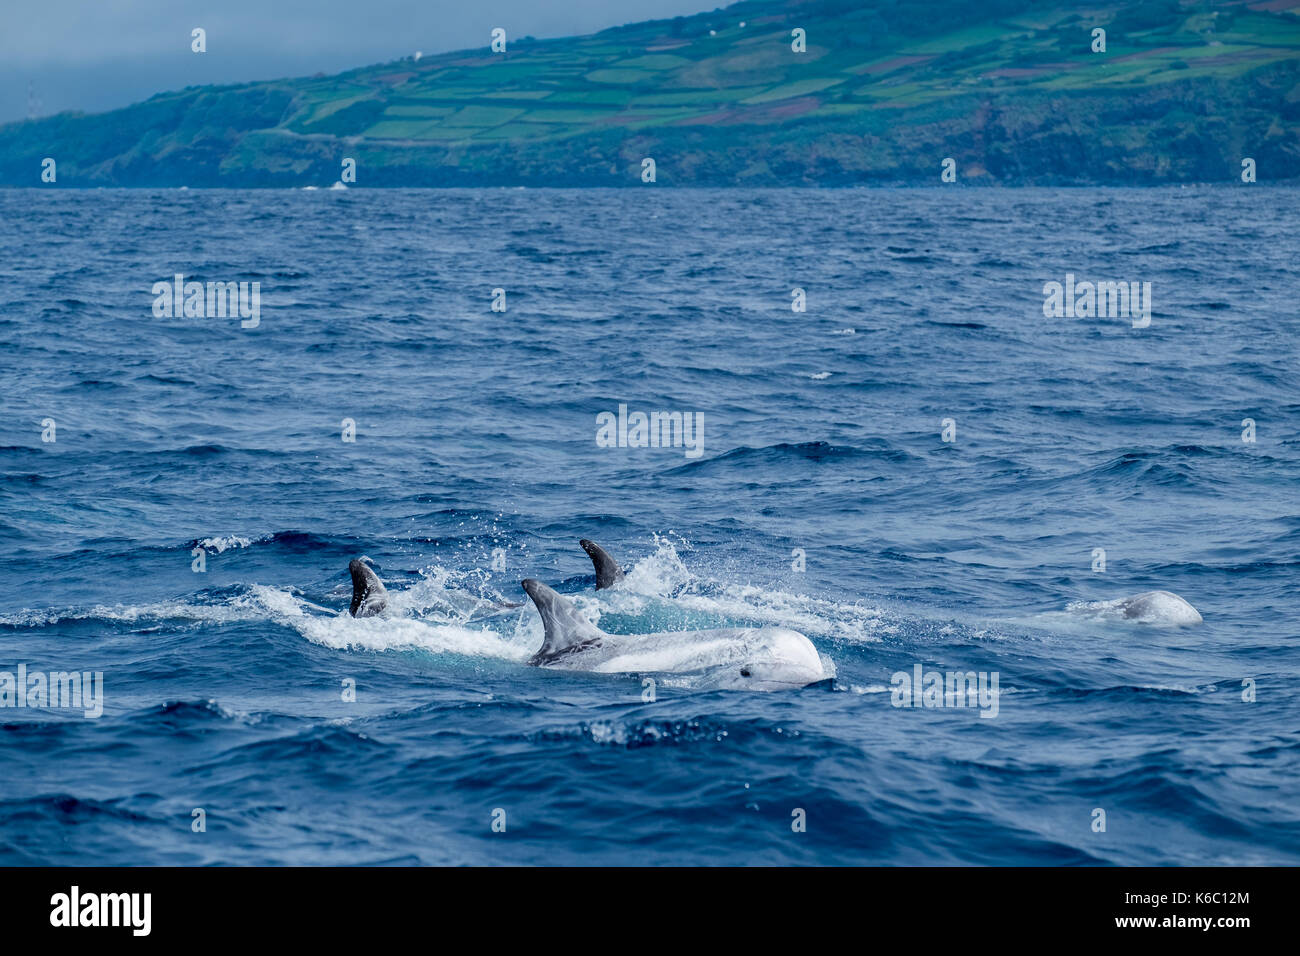 A pod of Risso's dolphins power through the waves near to the shore of the Azores. - Stock Image